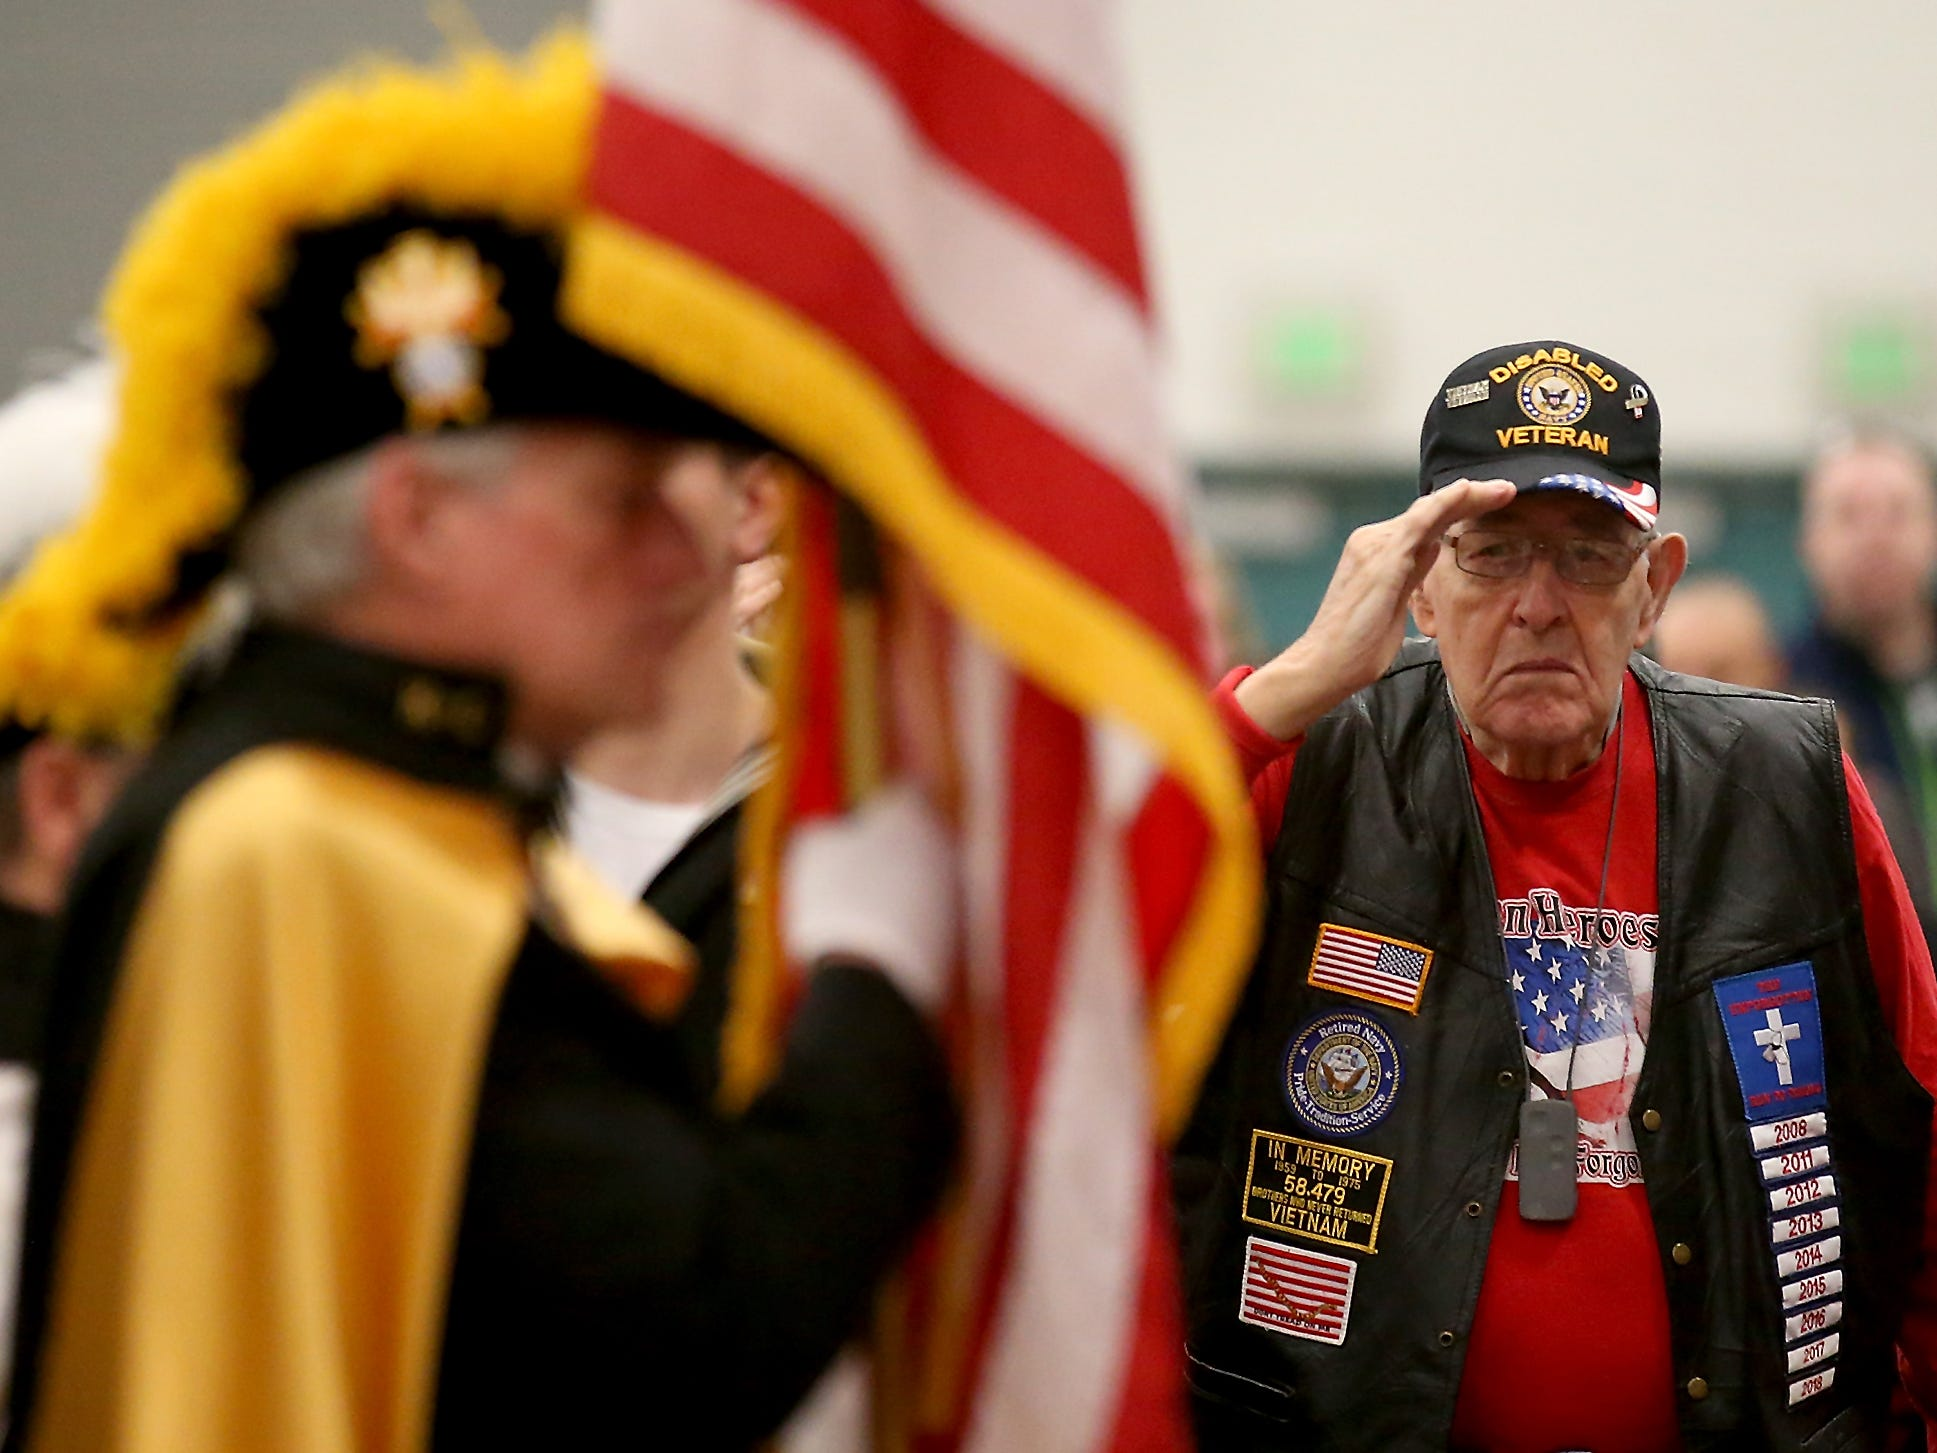 Veteran William Lilley, of Silverdale, salutes the flag as the Knights of Columbus present the colors at the start of the Honoring All Who Served Veterans Day ceremony at the Kitsap Sun Pavilion on Monday, November 12, 2018.